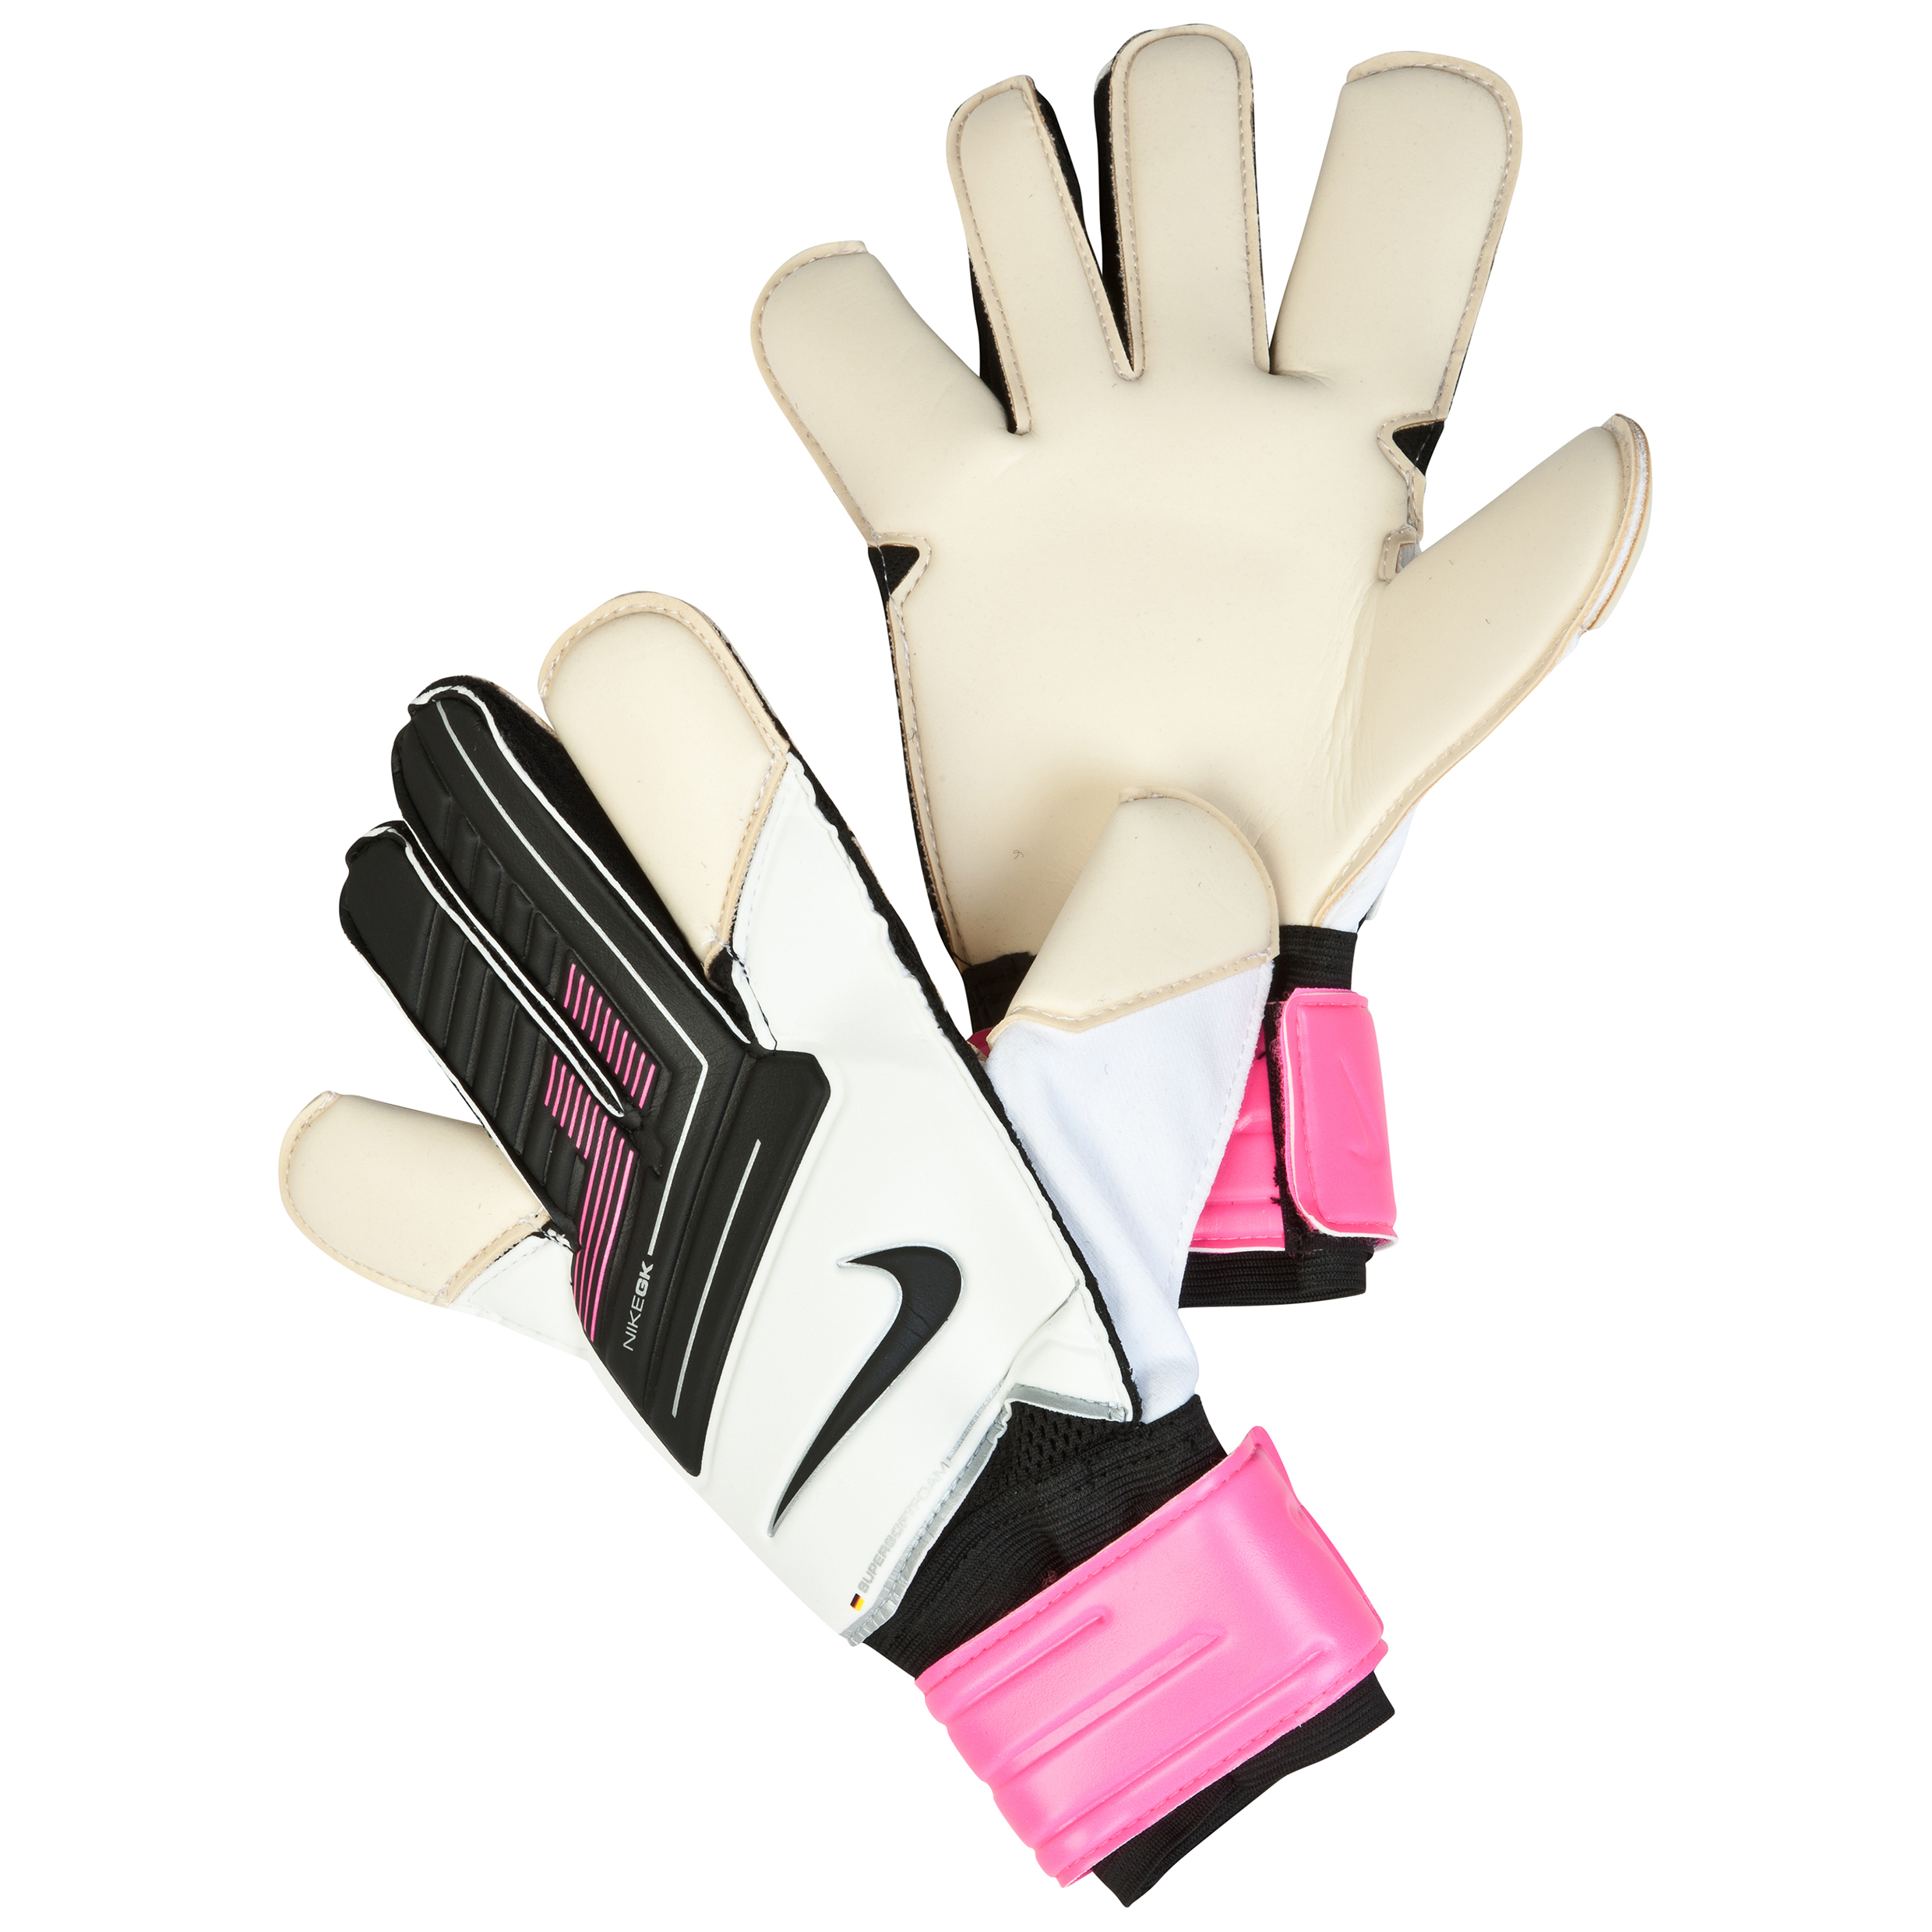 Nike Grip 3 Goalkeeper Gloves - White/Pink Flash/Black